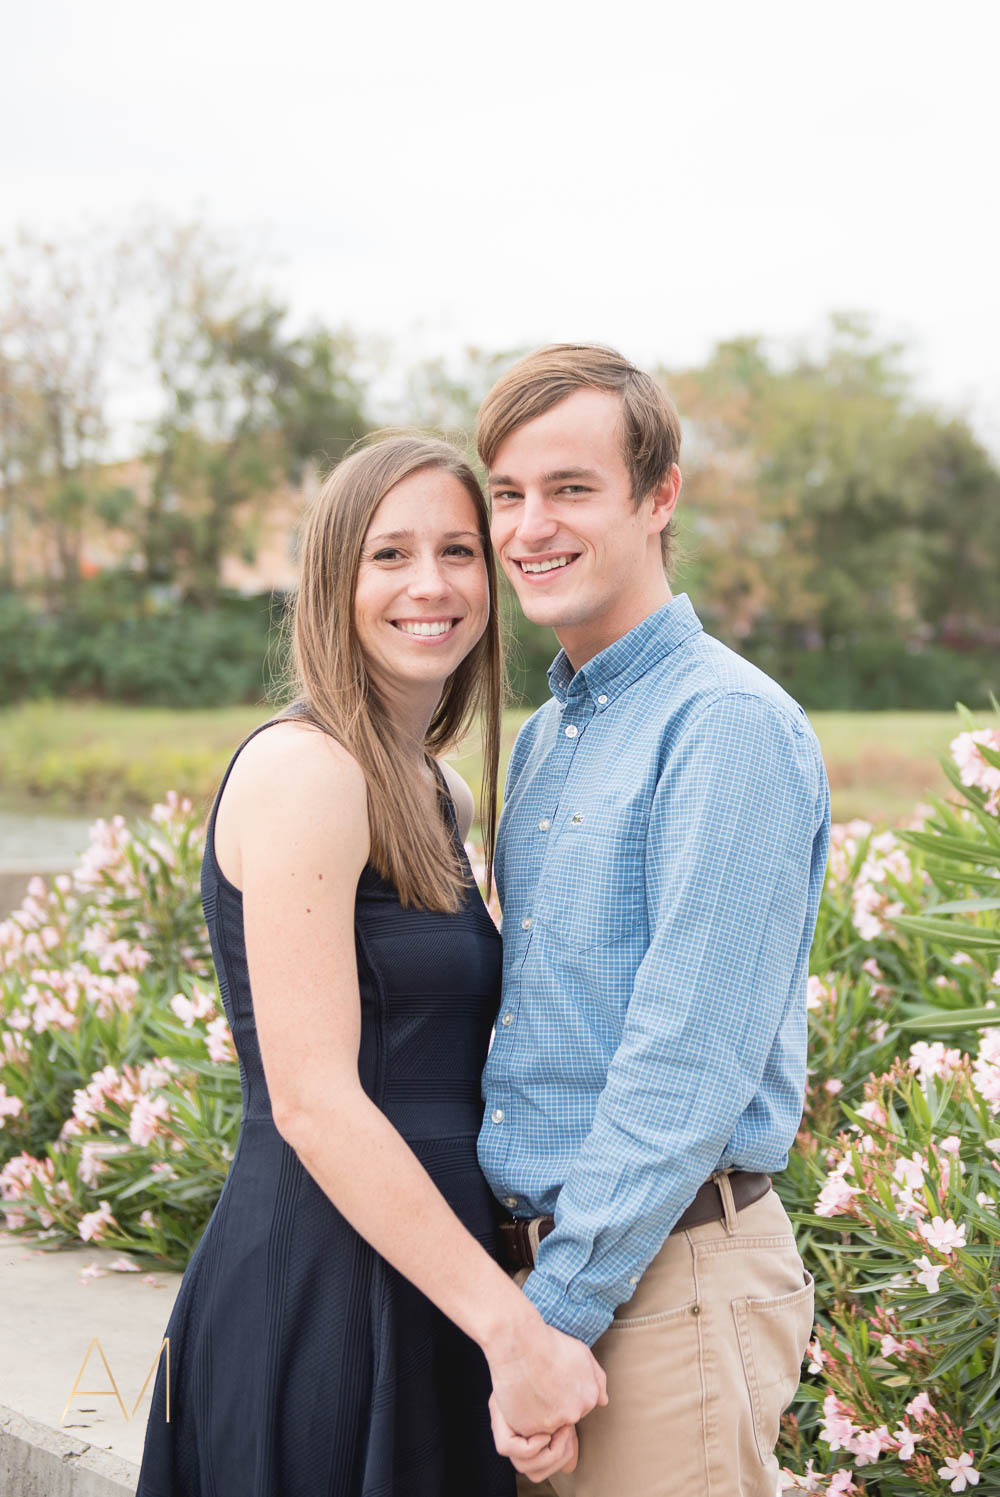 AshleighMillerWeddings-KatieMax-Engagement-Austin-TX-1509-Blog.jpg